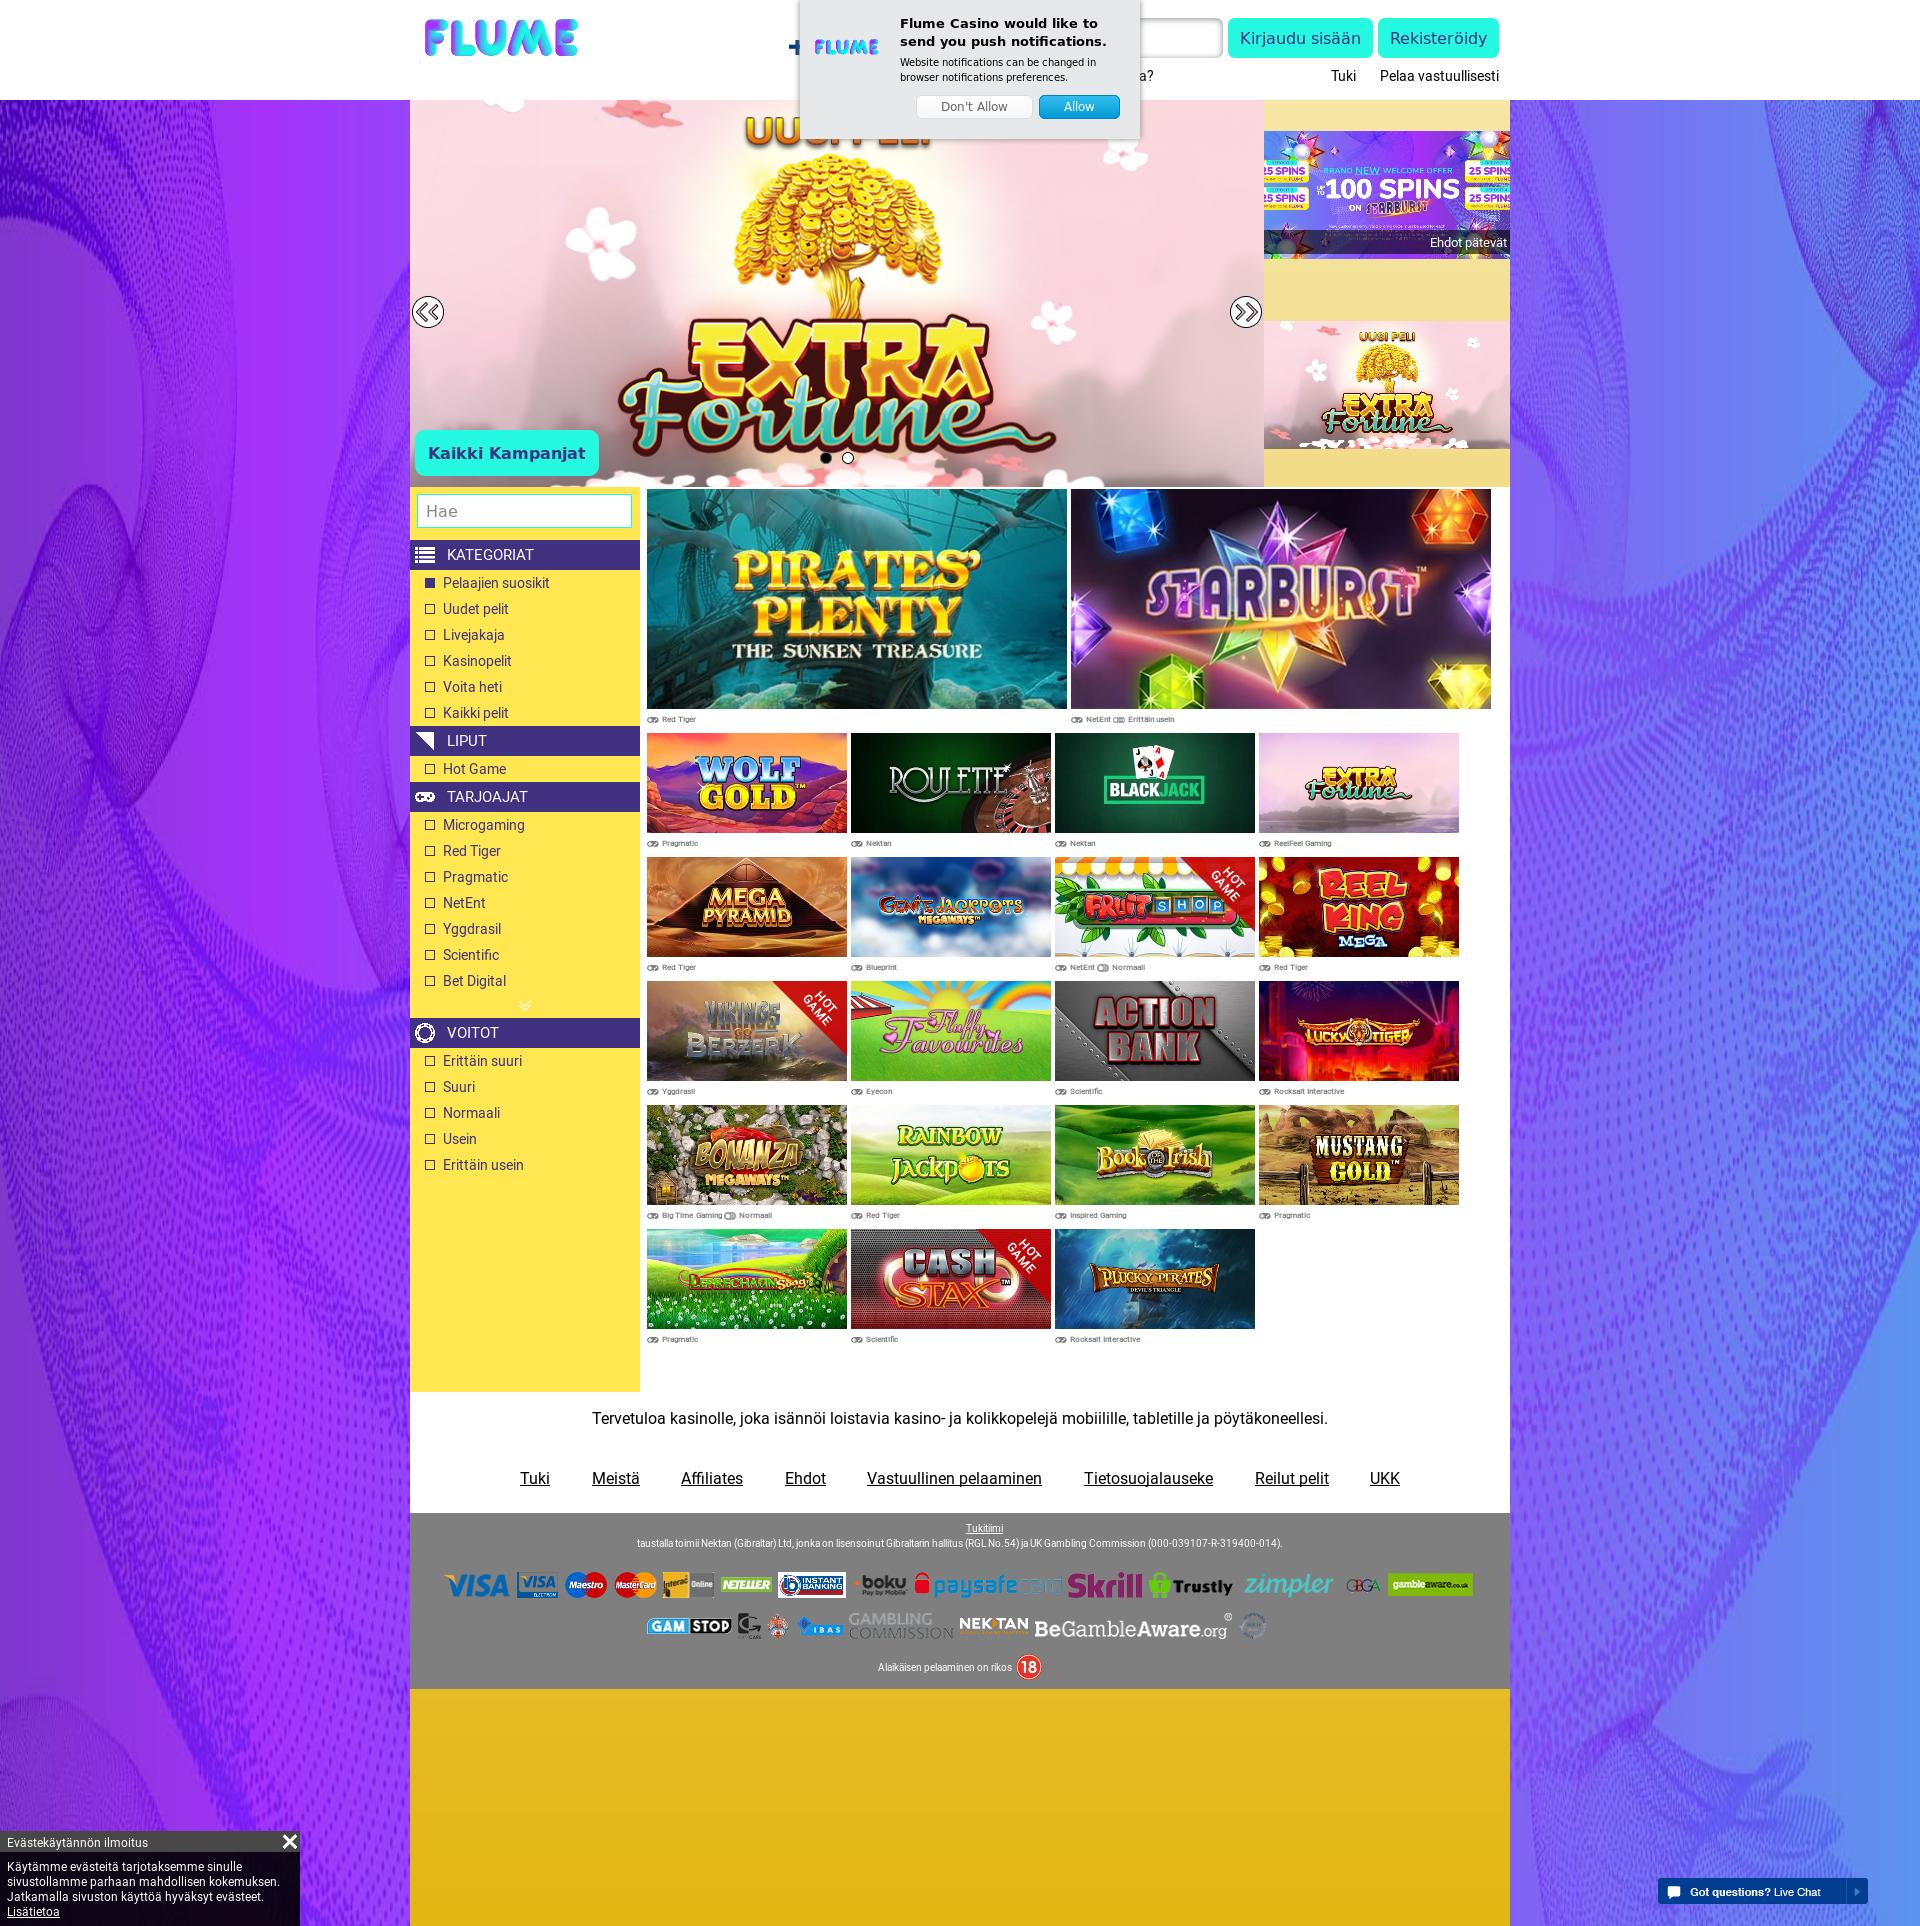 Casino screen Lobby 2019-07-22 for Finland